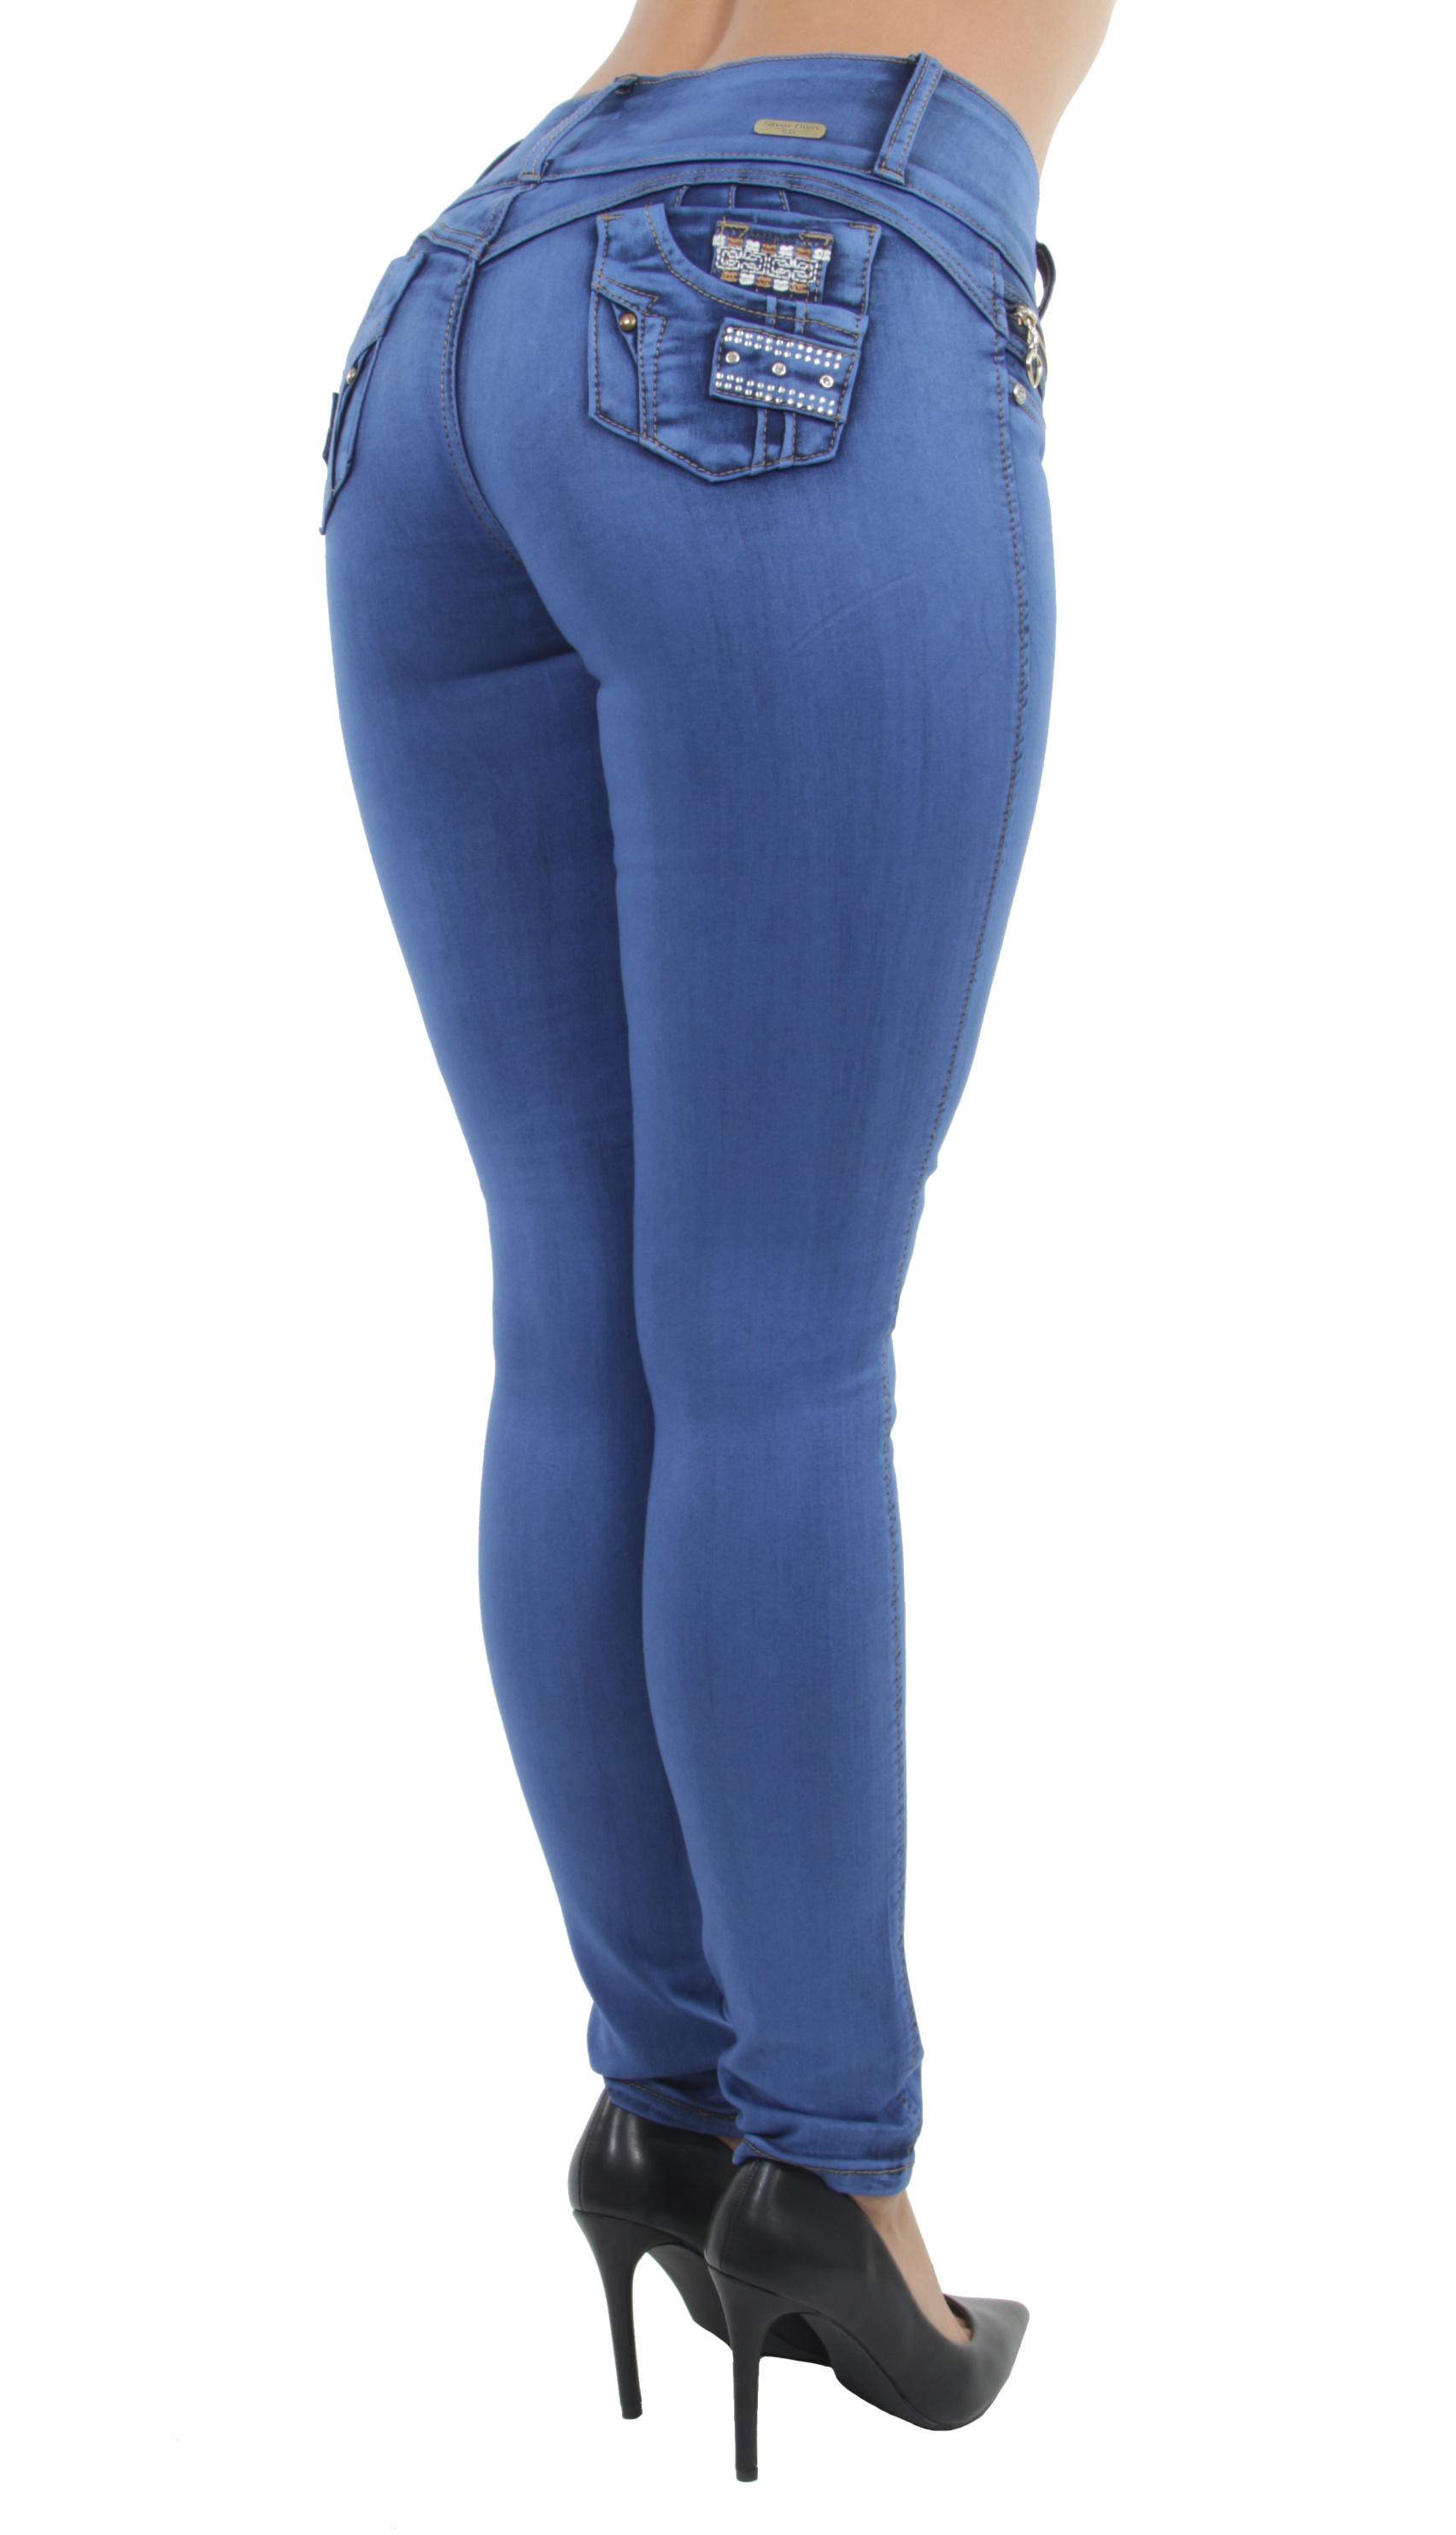 Women-039-s-Juniors-Colombian-Design-Butt-Lift-Push-Up-Mid-Waist-Skinny-Jeans thumbnail 13